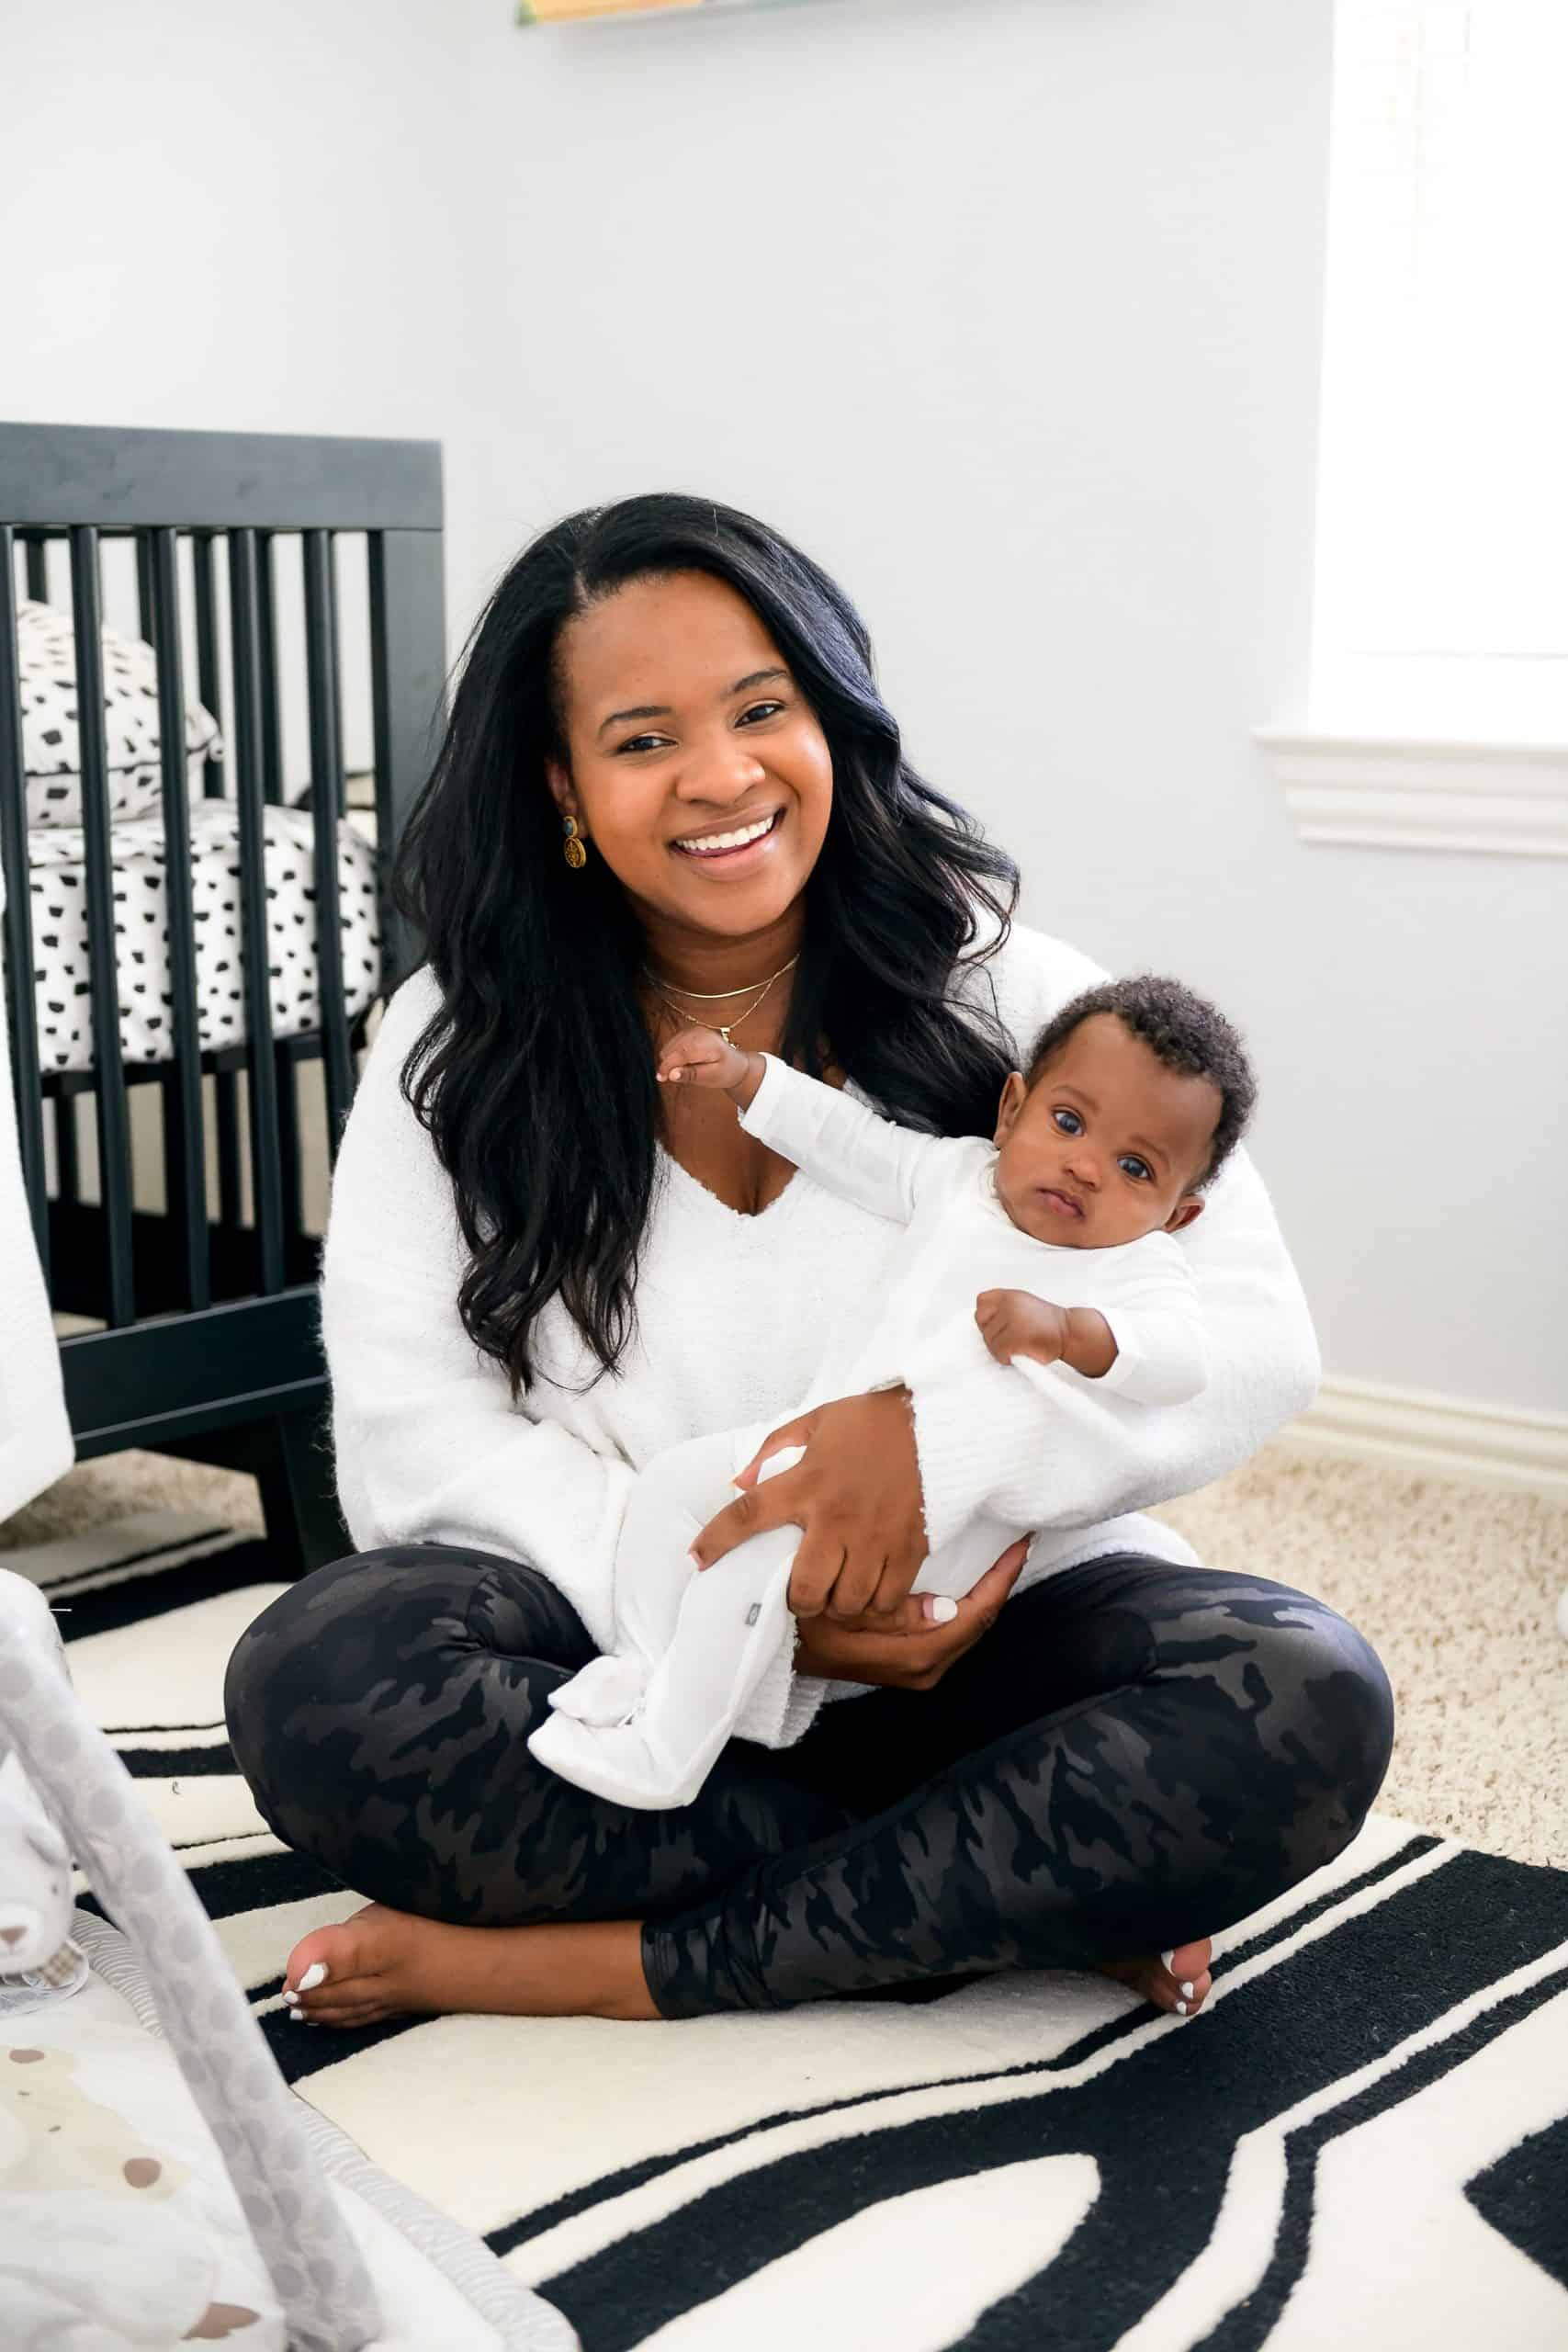 Pottery Barn Baby Registry by popular Dallas motherhood blog, Glamorous Versatility: image of a mom wearing a Judith March STELLA SWEATER and Spanx Faux Leather Camo Leggings and sitting on a black and white rug in her baby's nursery room and holding her baby in her lap.